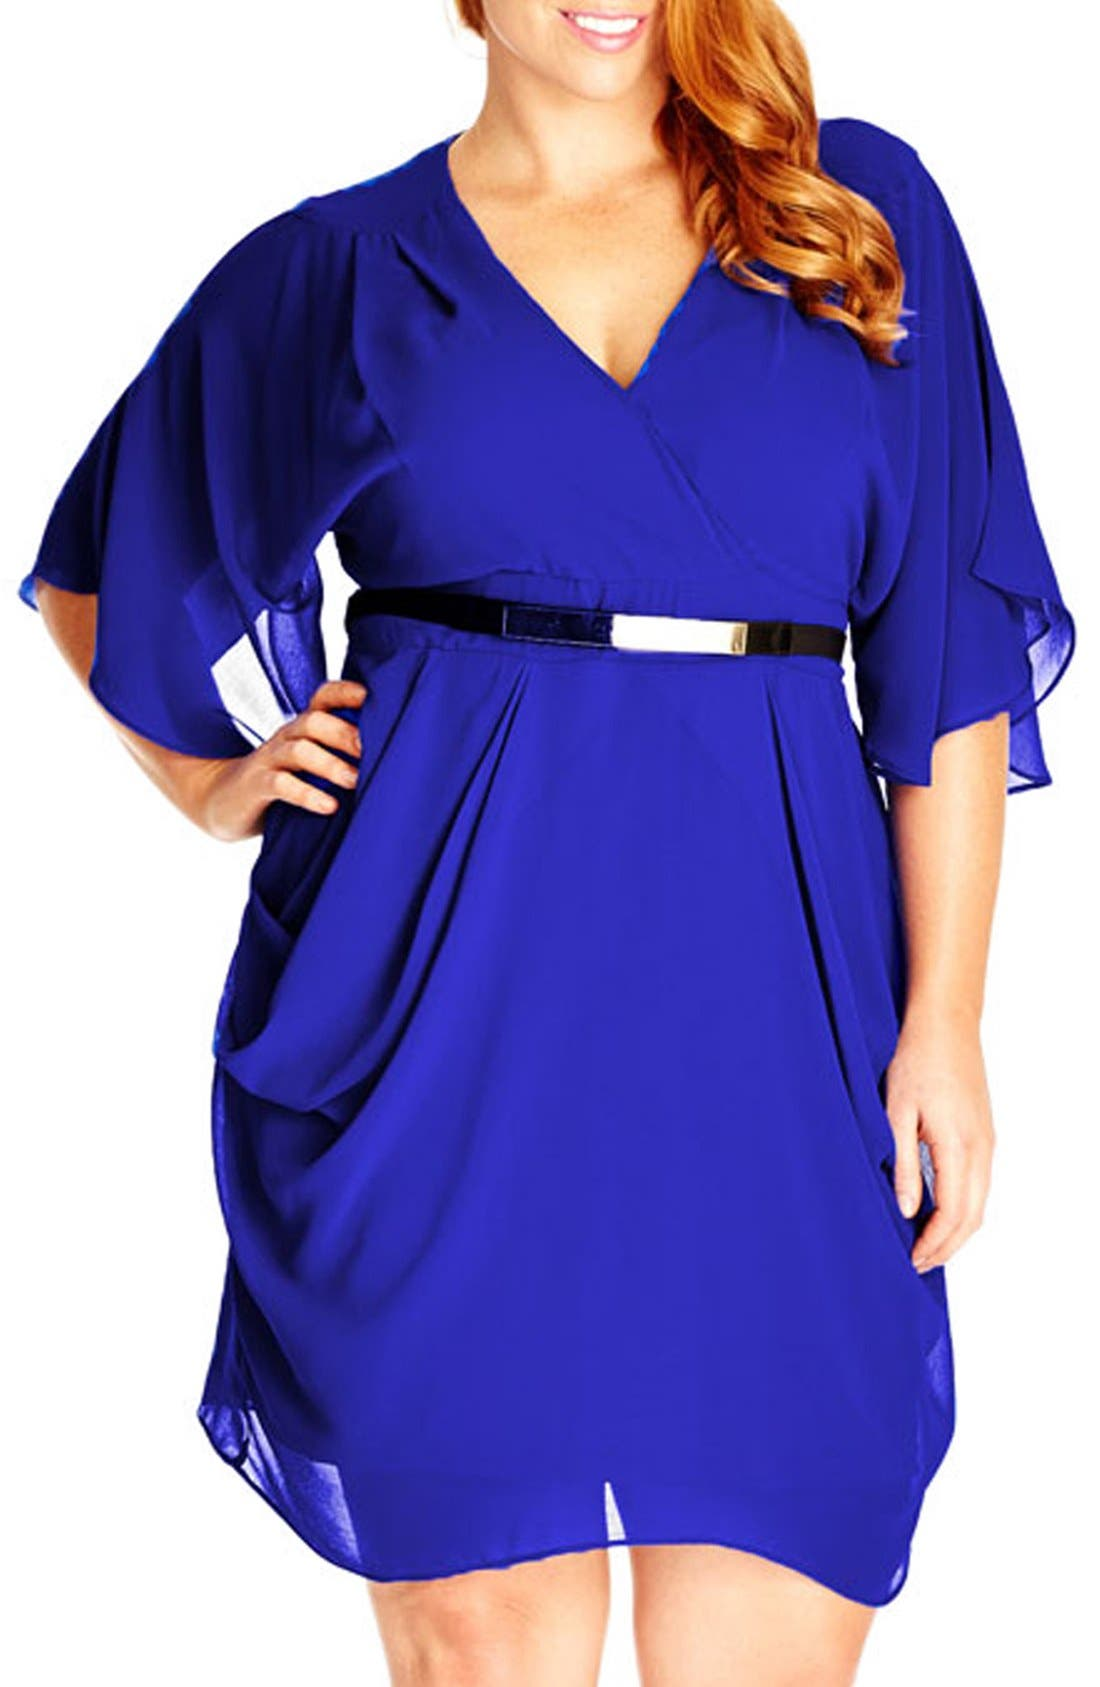 'Colour Wrap' Surplice Dress,                             Main thumbnail 1, color,                             ULTRA BLUE